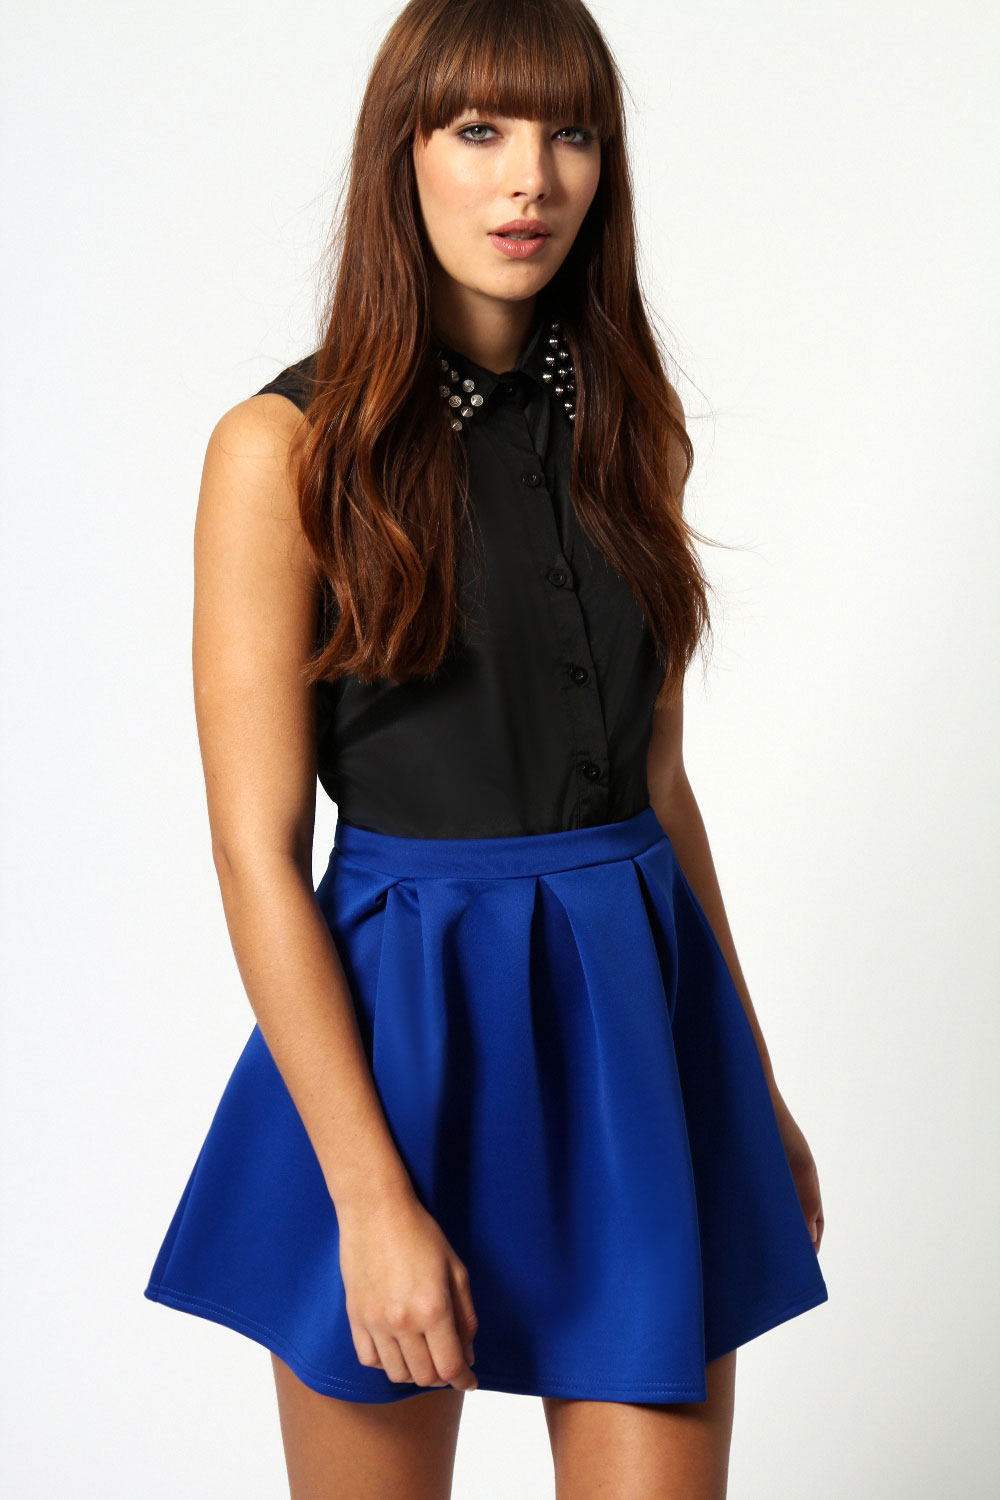 Boohoo-Kate-Box-Pleat-Skater-Hip-Length-Skirt thumbnail 4